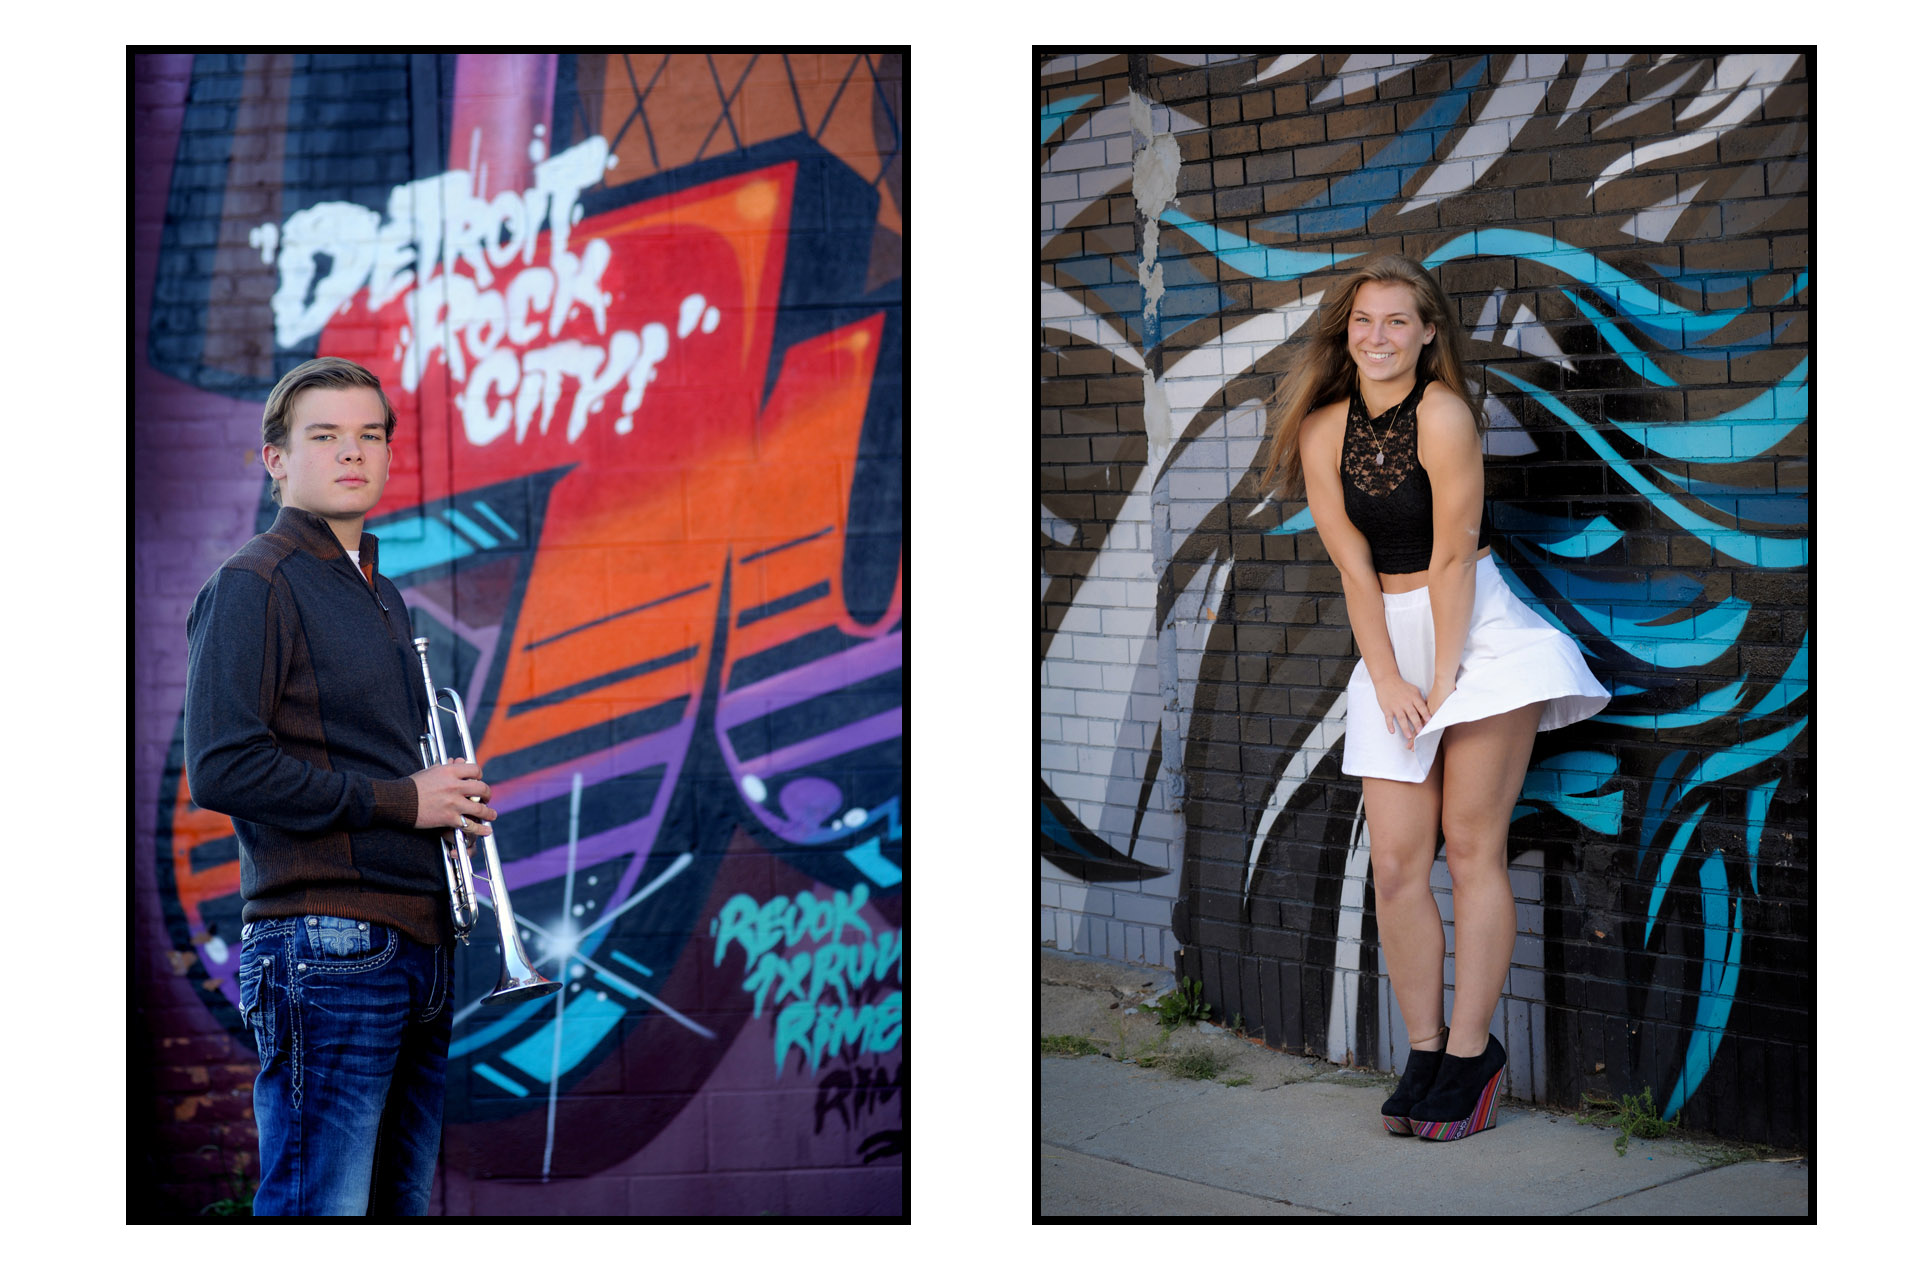 Best Detroit senior photographer's high school senior picture of graffiti art and senior photos from downtown Detroit, Michigan.